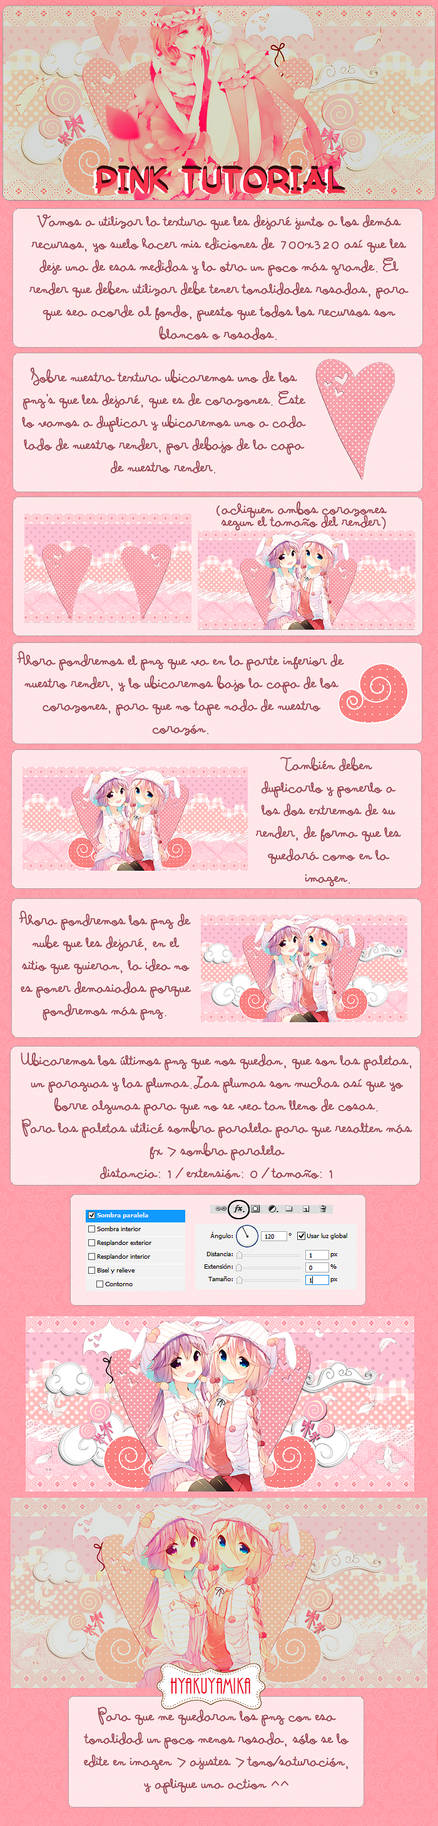 Pink tutorial (spanish and english)